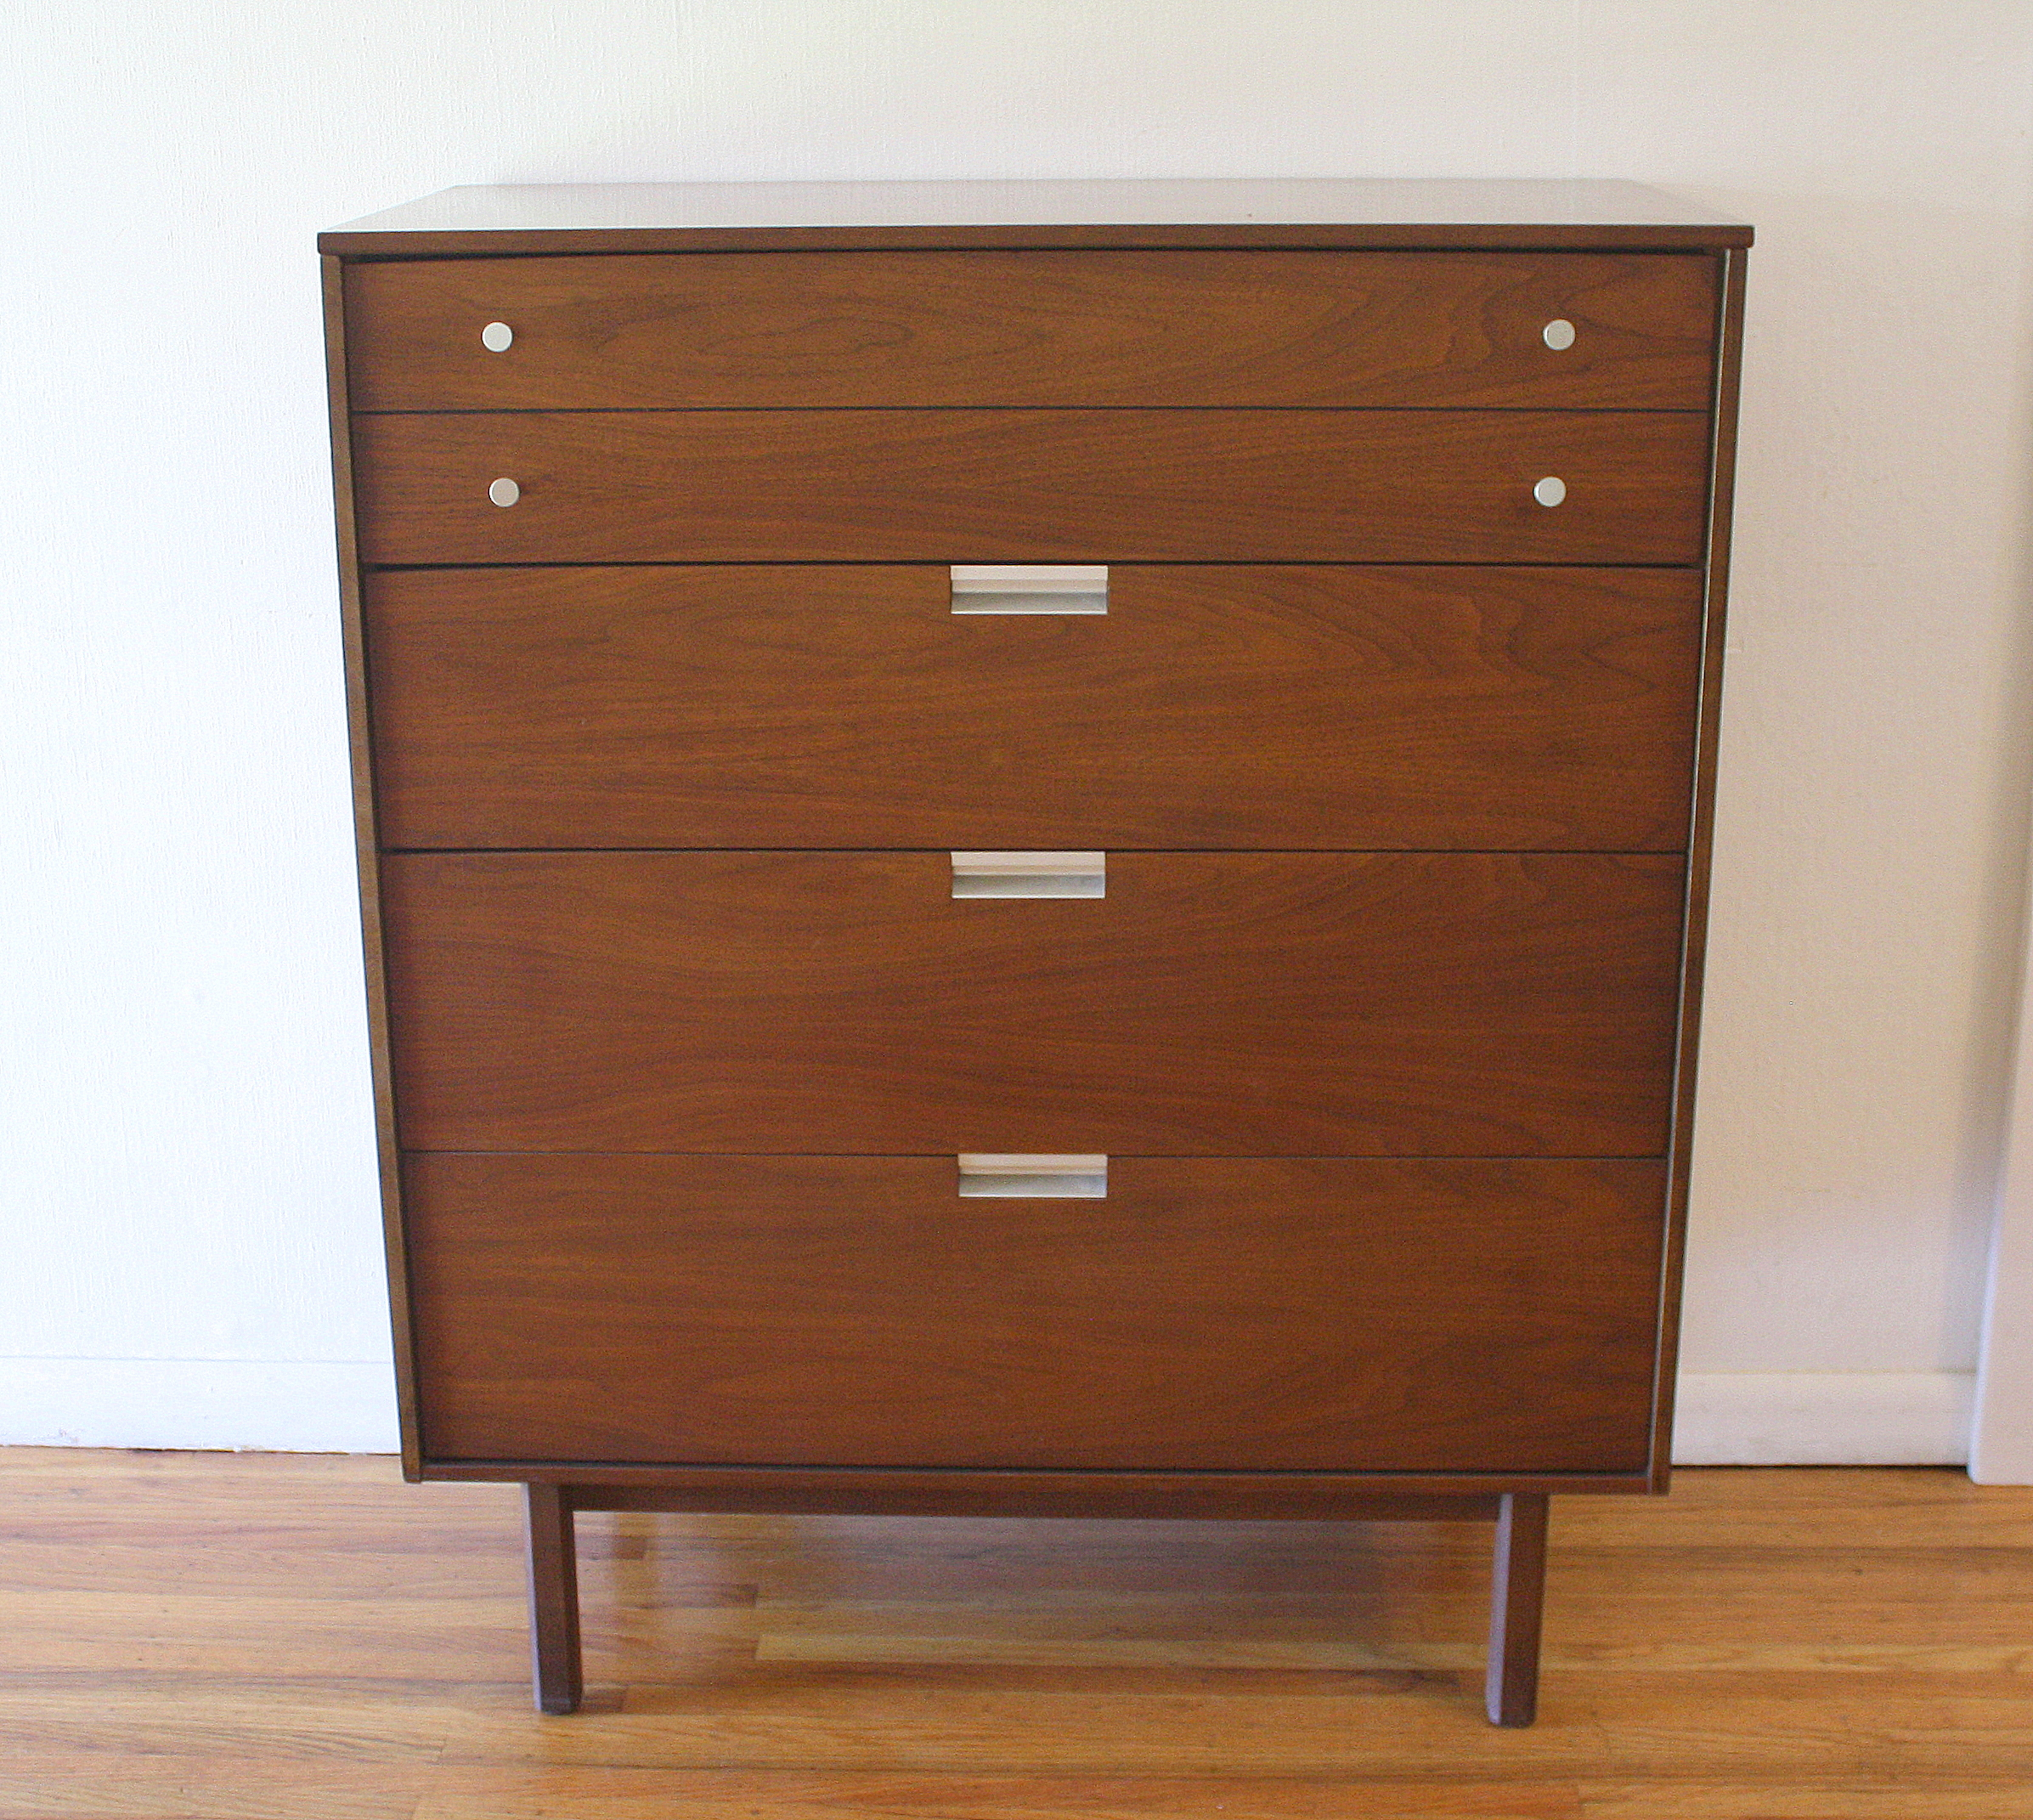 Bassett tall dresser with silver knobs & pulls 3.JPG